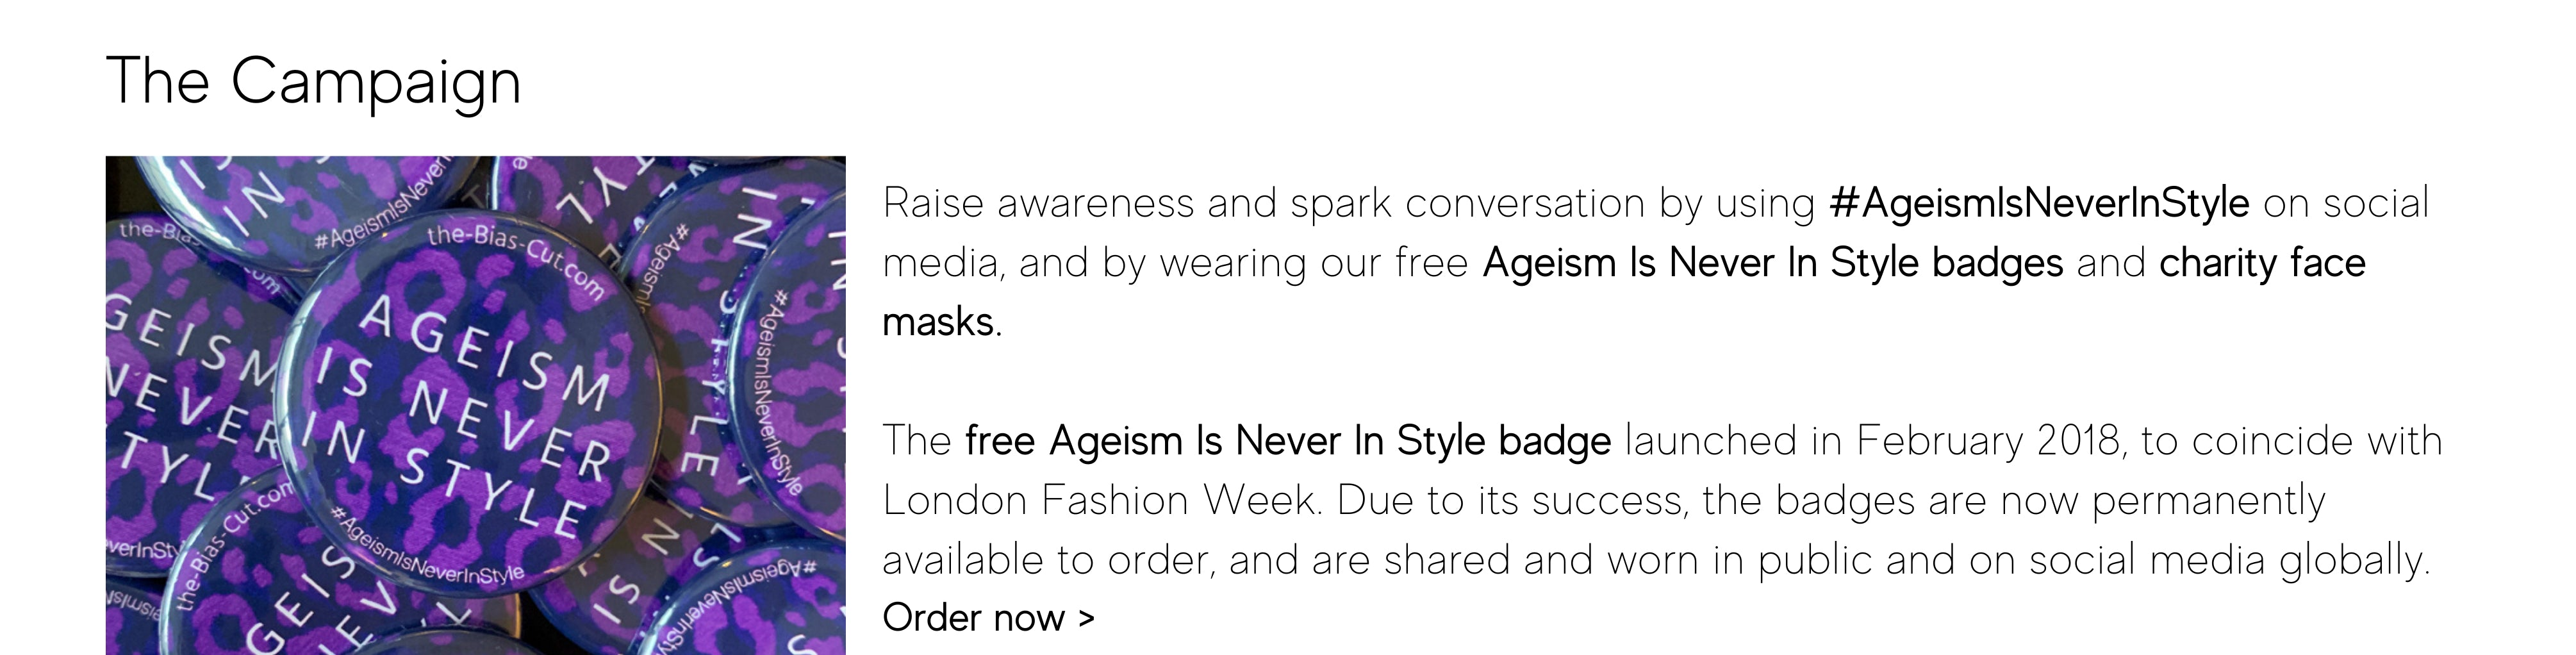 Raise awareness and spark conversation by using #AgeismIsNeverInStyle on social media, and by wearing our free Ageism Is Never In Style badges and charity face masks.   The free Ageism Is Never In Style badge launched in February 2018, to coincide with London Fashion Week. Due to its success, the badges are now permanently available to order, and are shared and worn in public and on social media globally.  Order now >